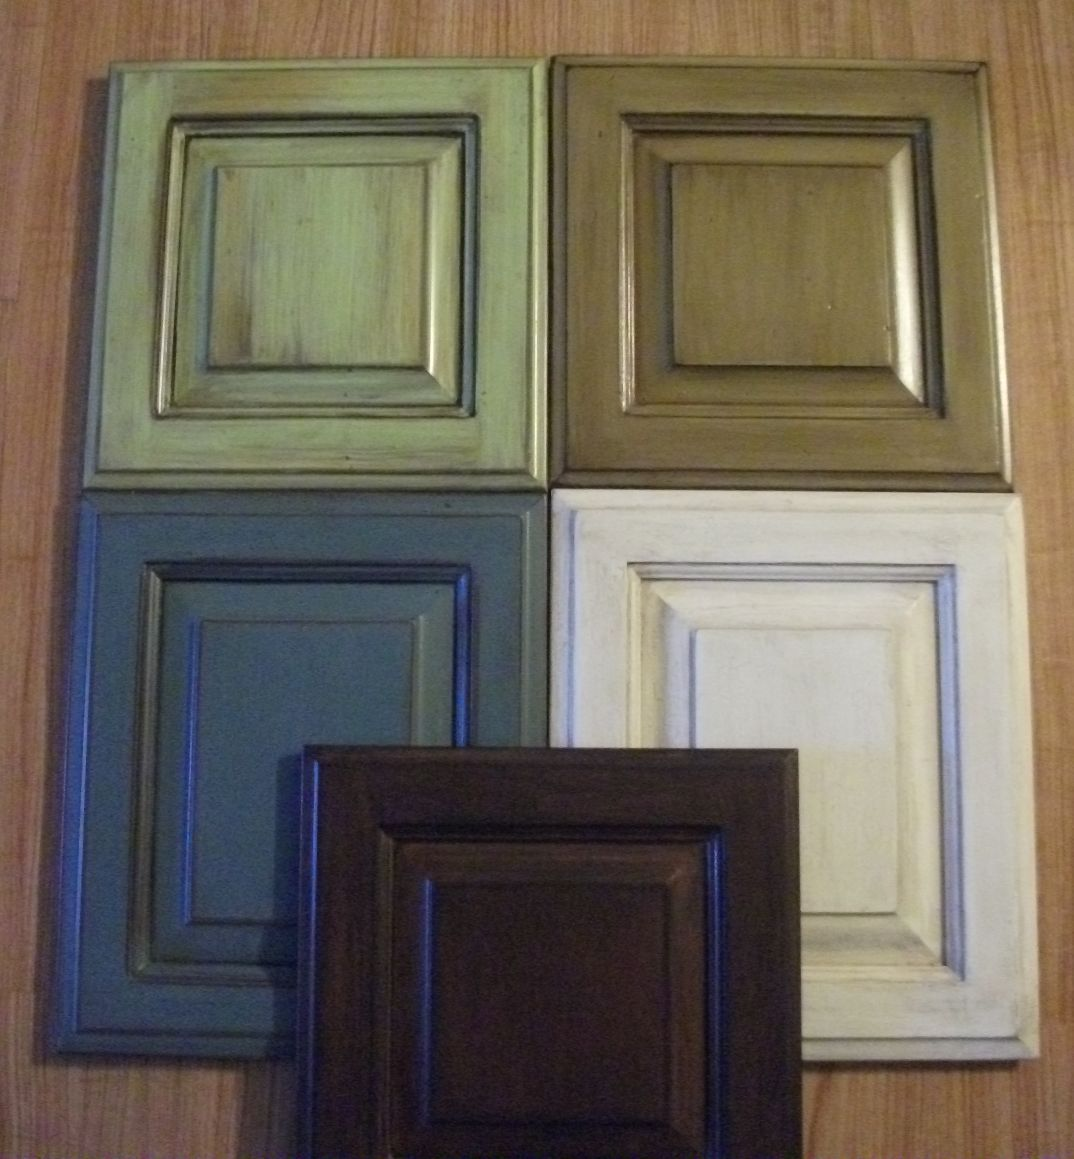 Refinishing Kitchen Cabinets Yourself: Pin By Jen Frieda On Books Worth Reading